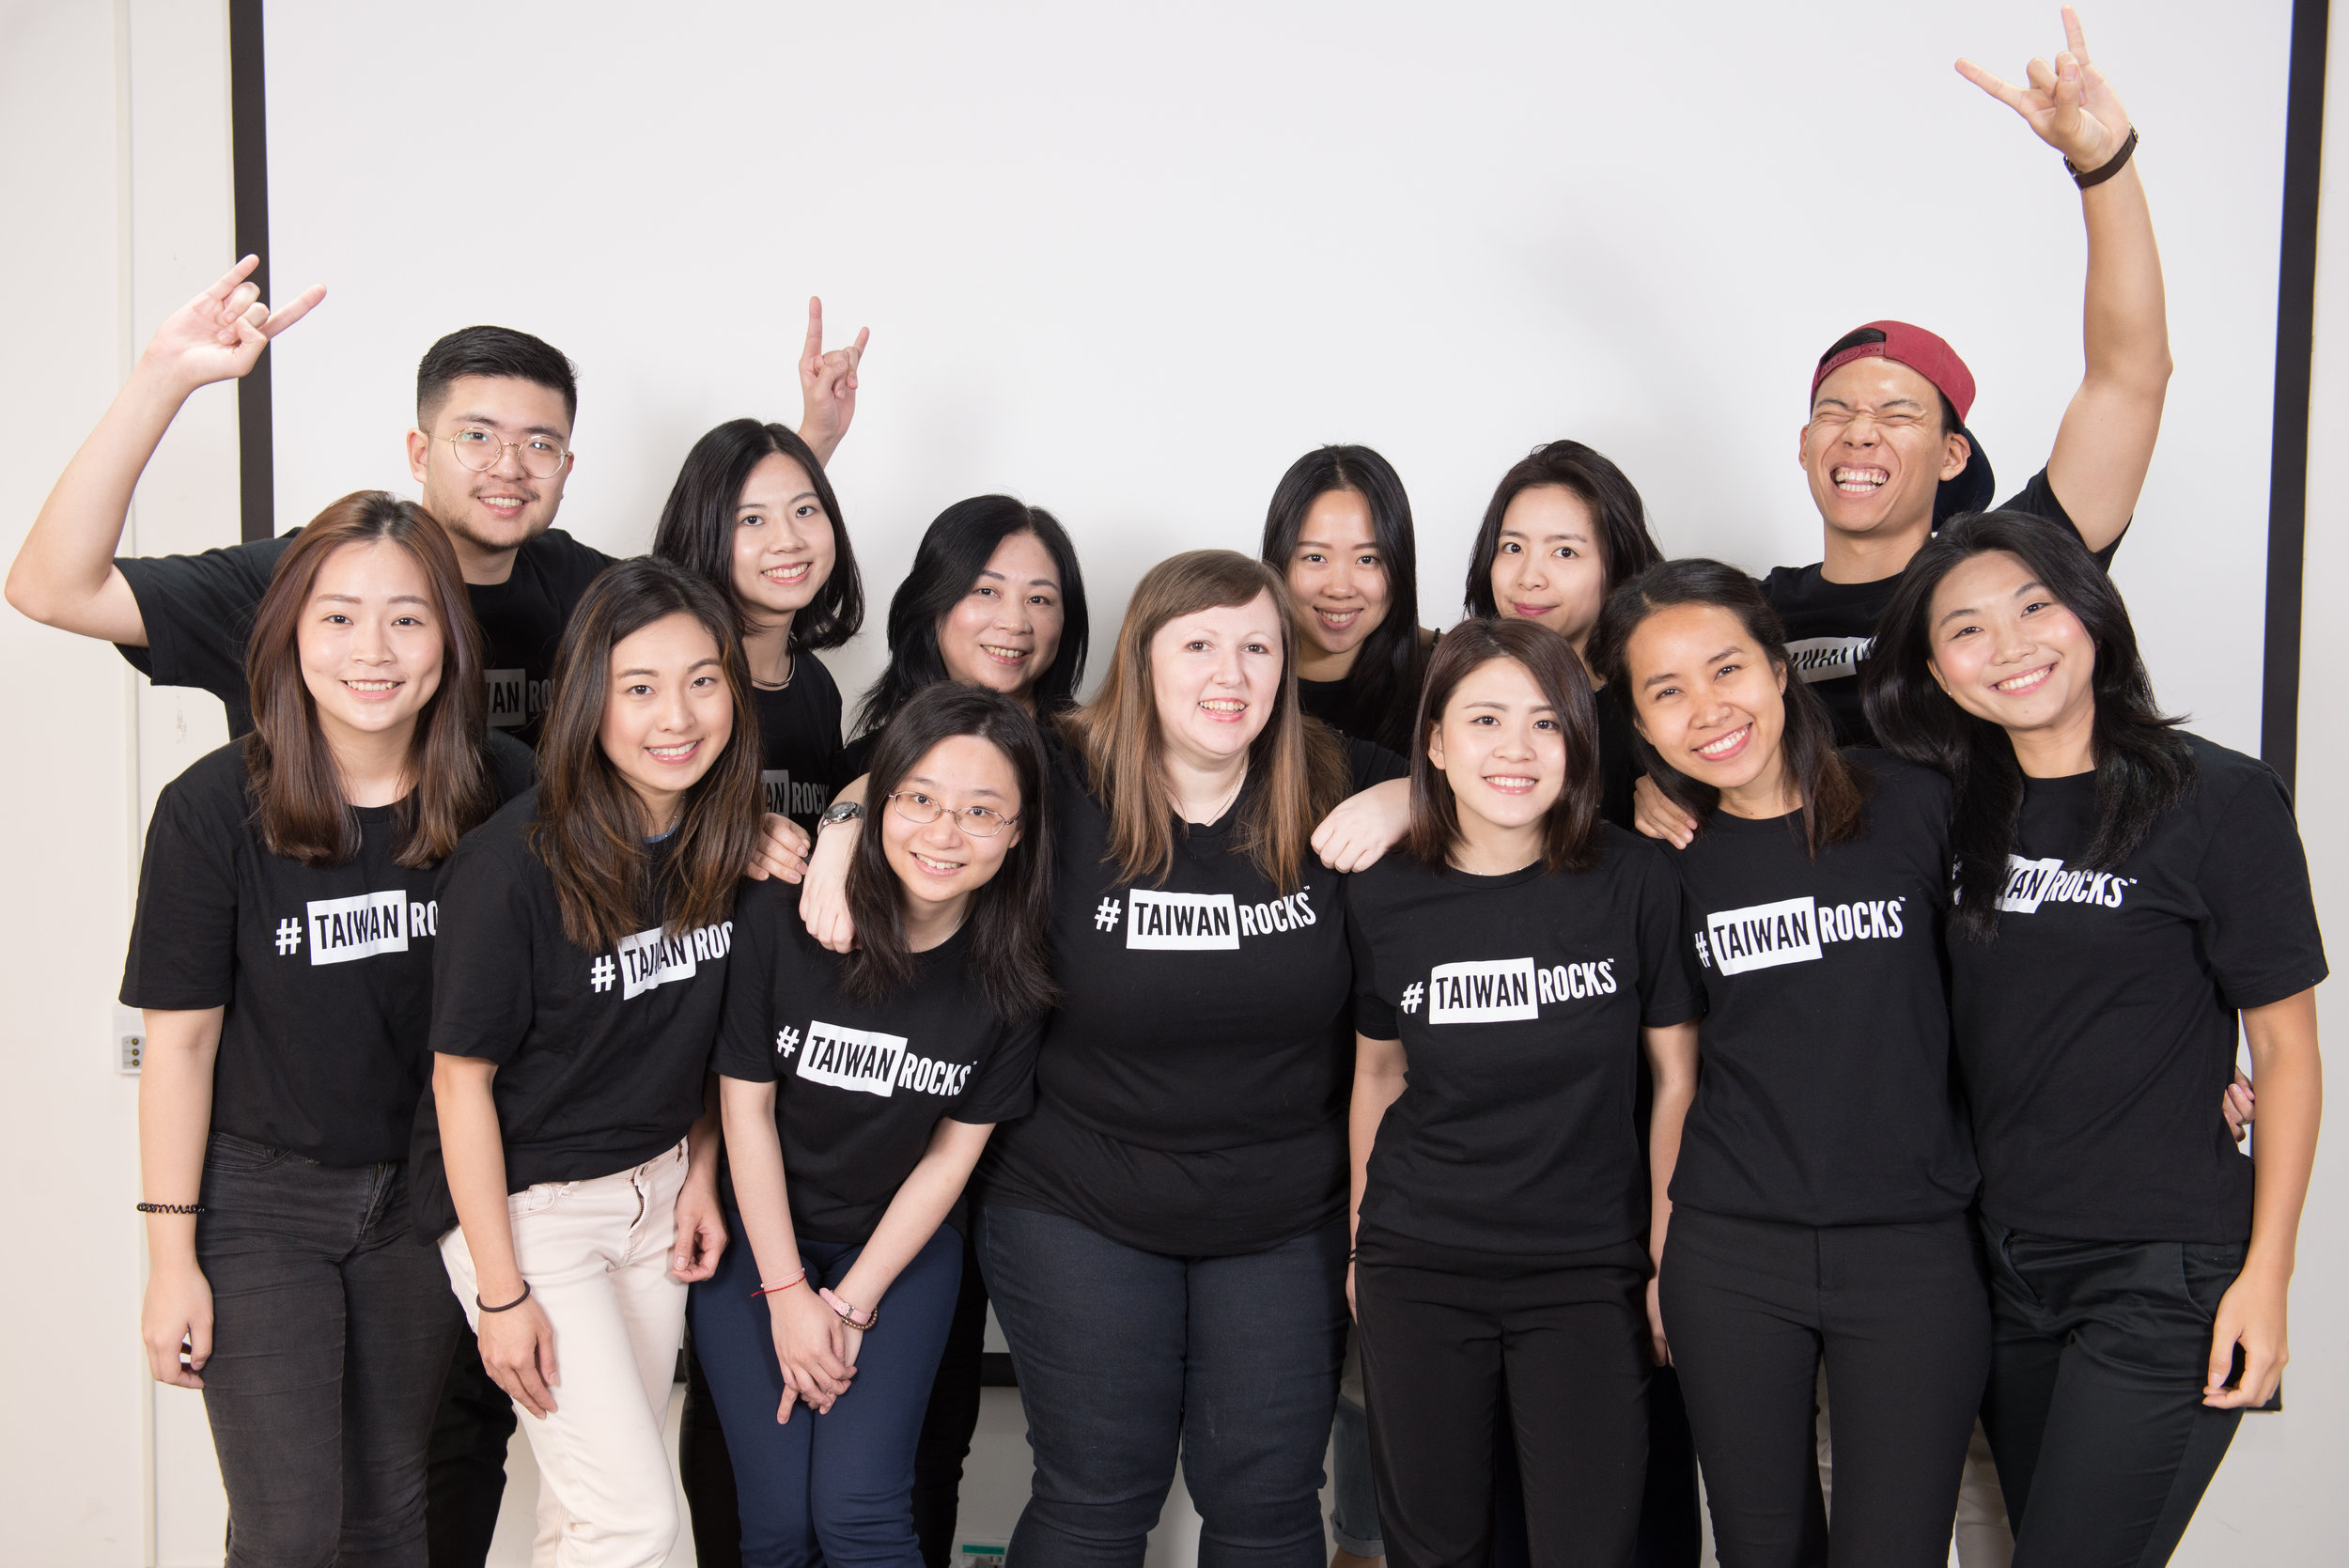 TSS team is composed of young, passionate talent - and we are welcoming more to join #TaiwanRocks spirit!